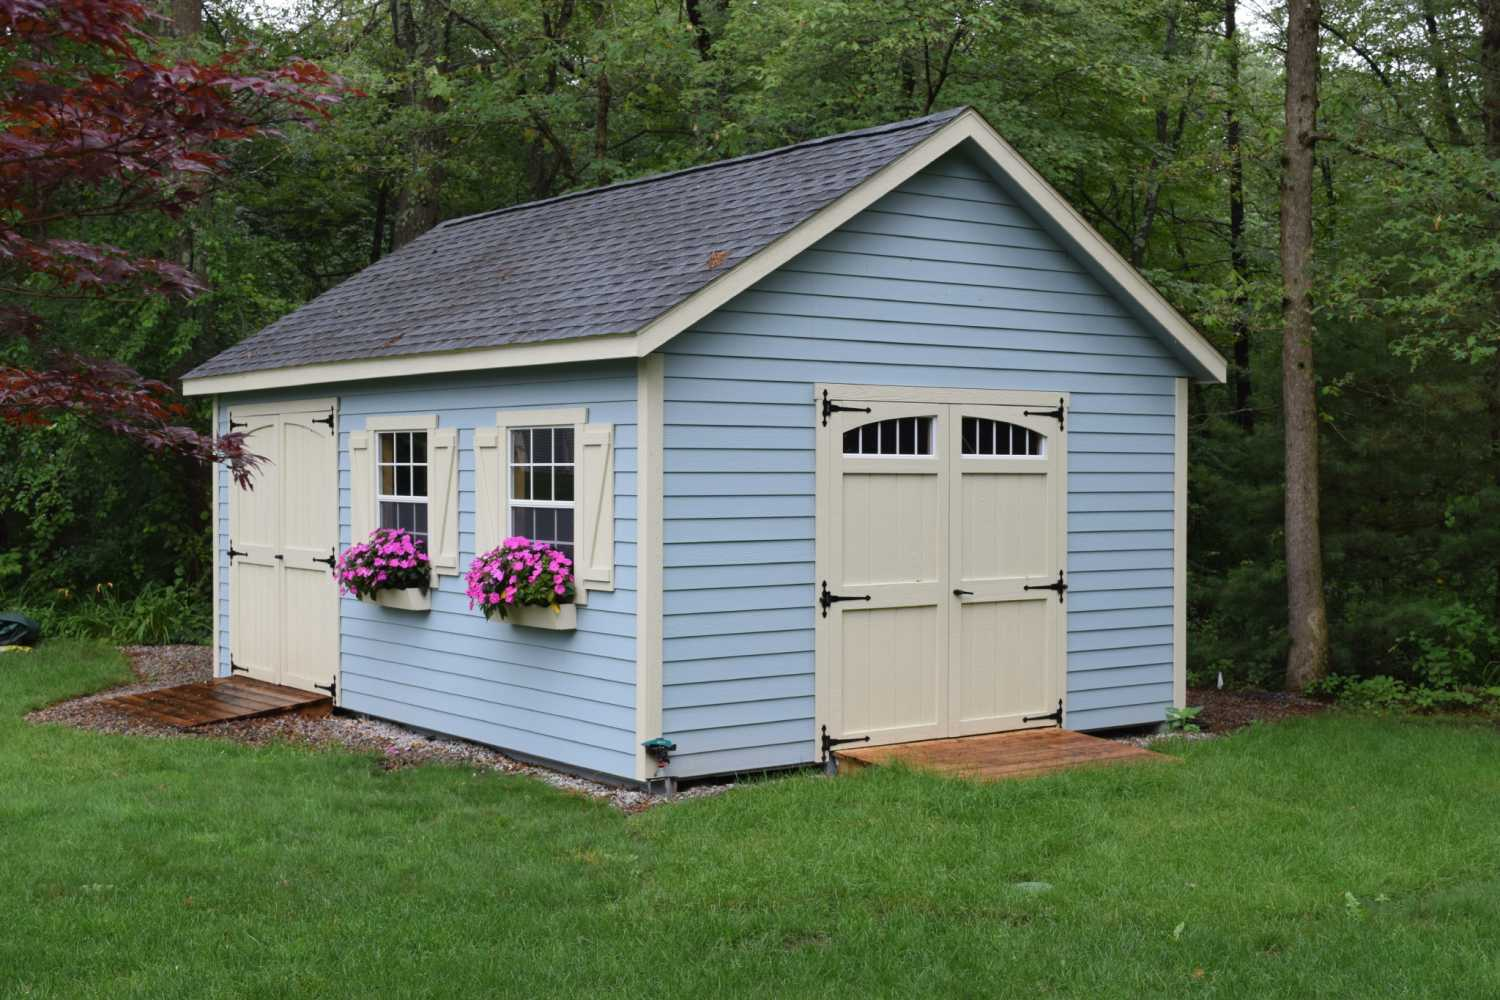 workshop in the pa sheds buy space lancaster two from ma for story spacious with living sale shed amish